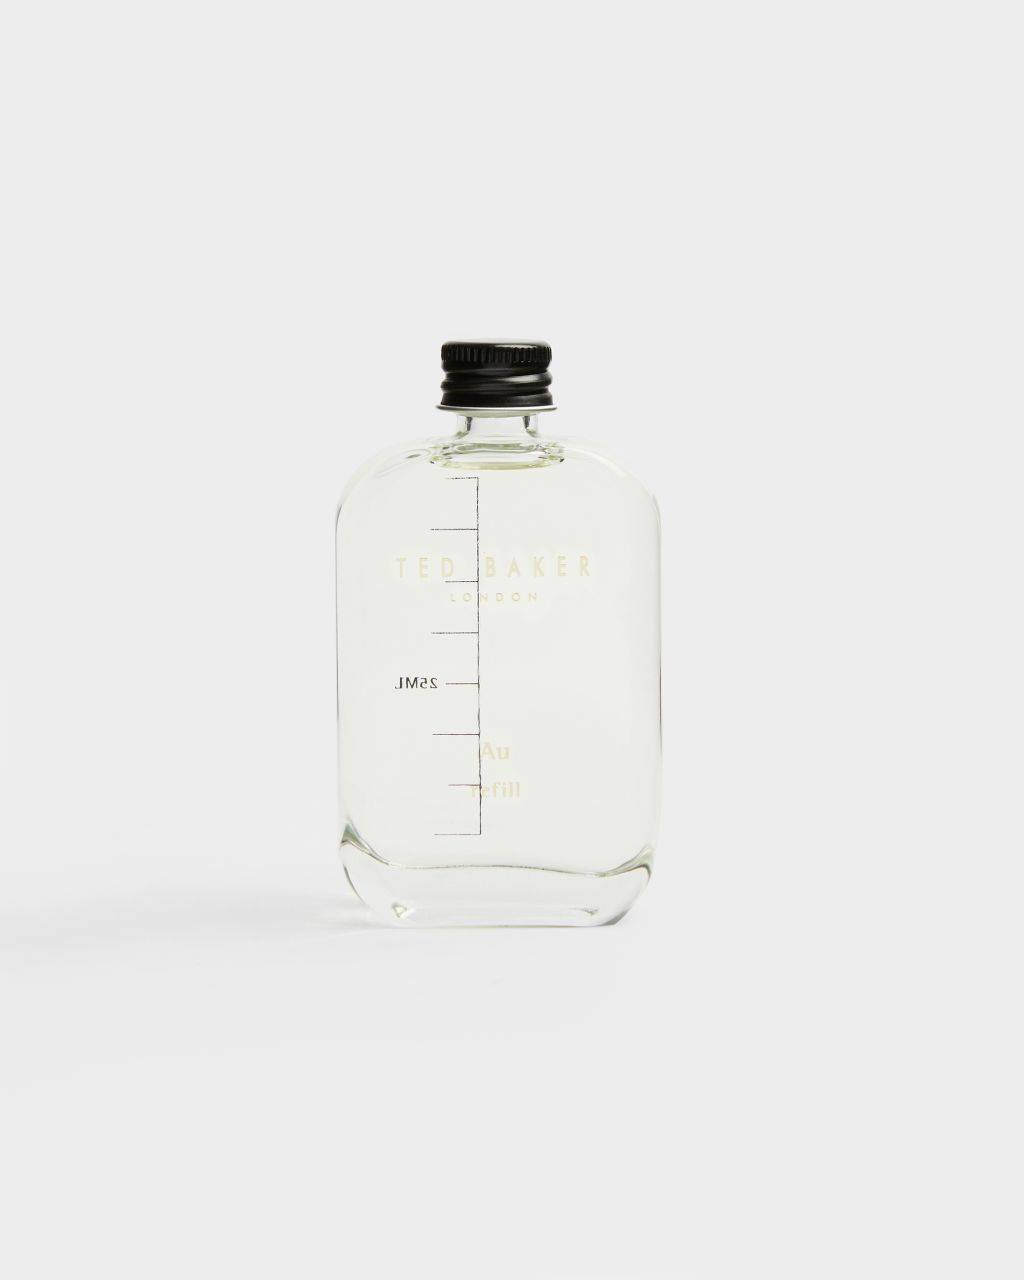 Ted Baker Travel Tonic Fragrance 50ml Refill  - Assorted - Size: Small